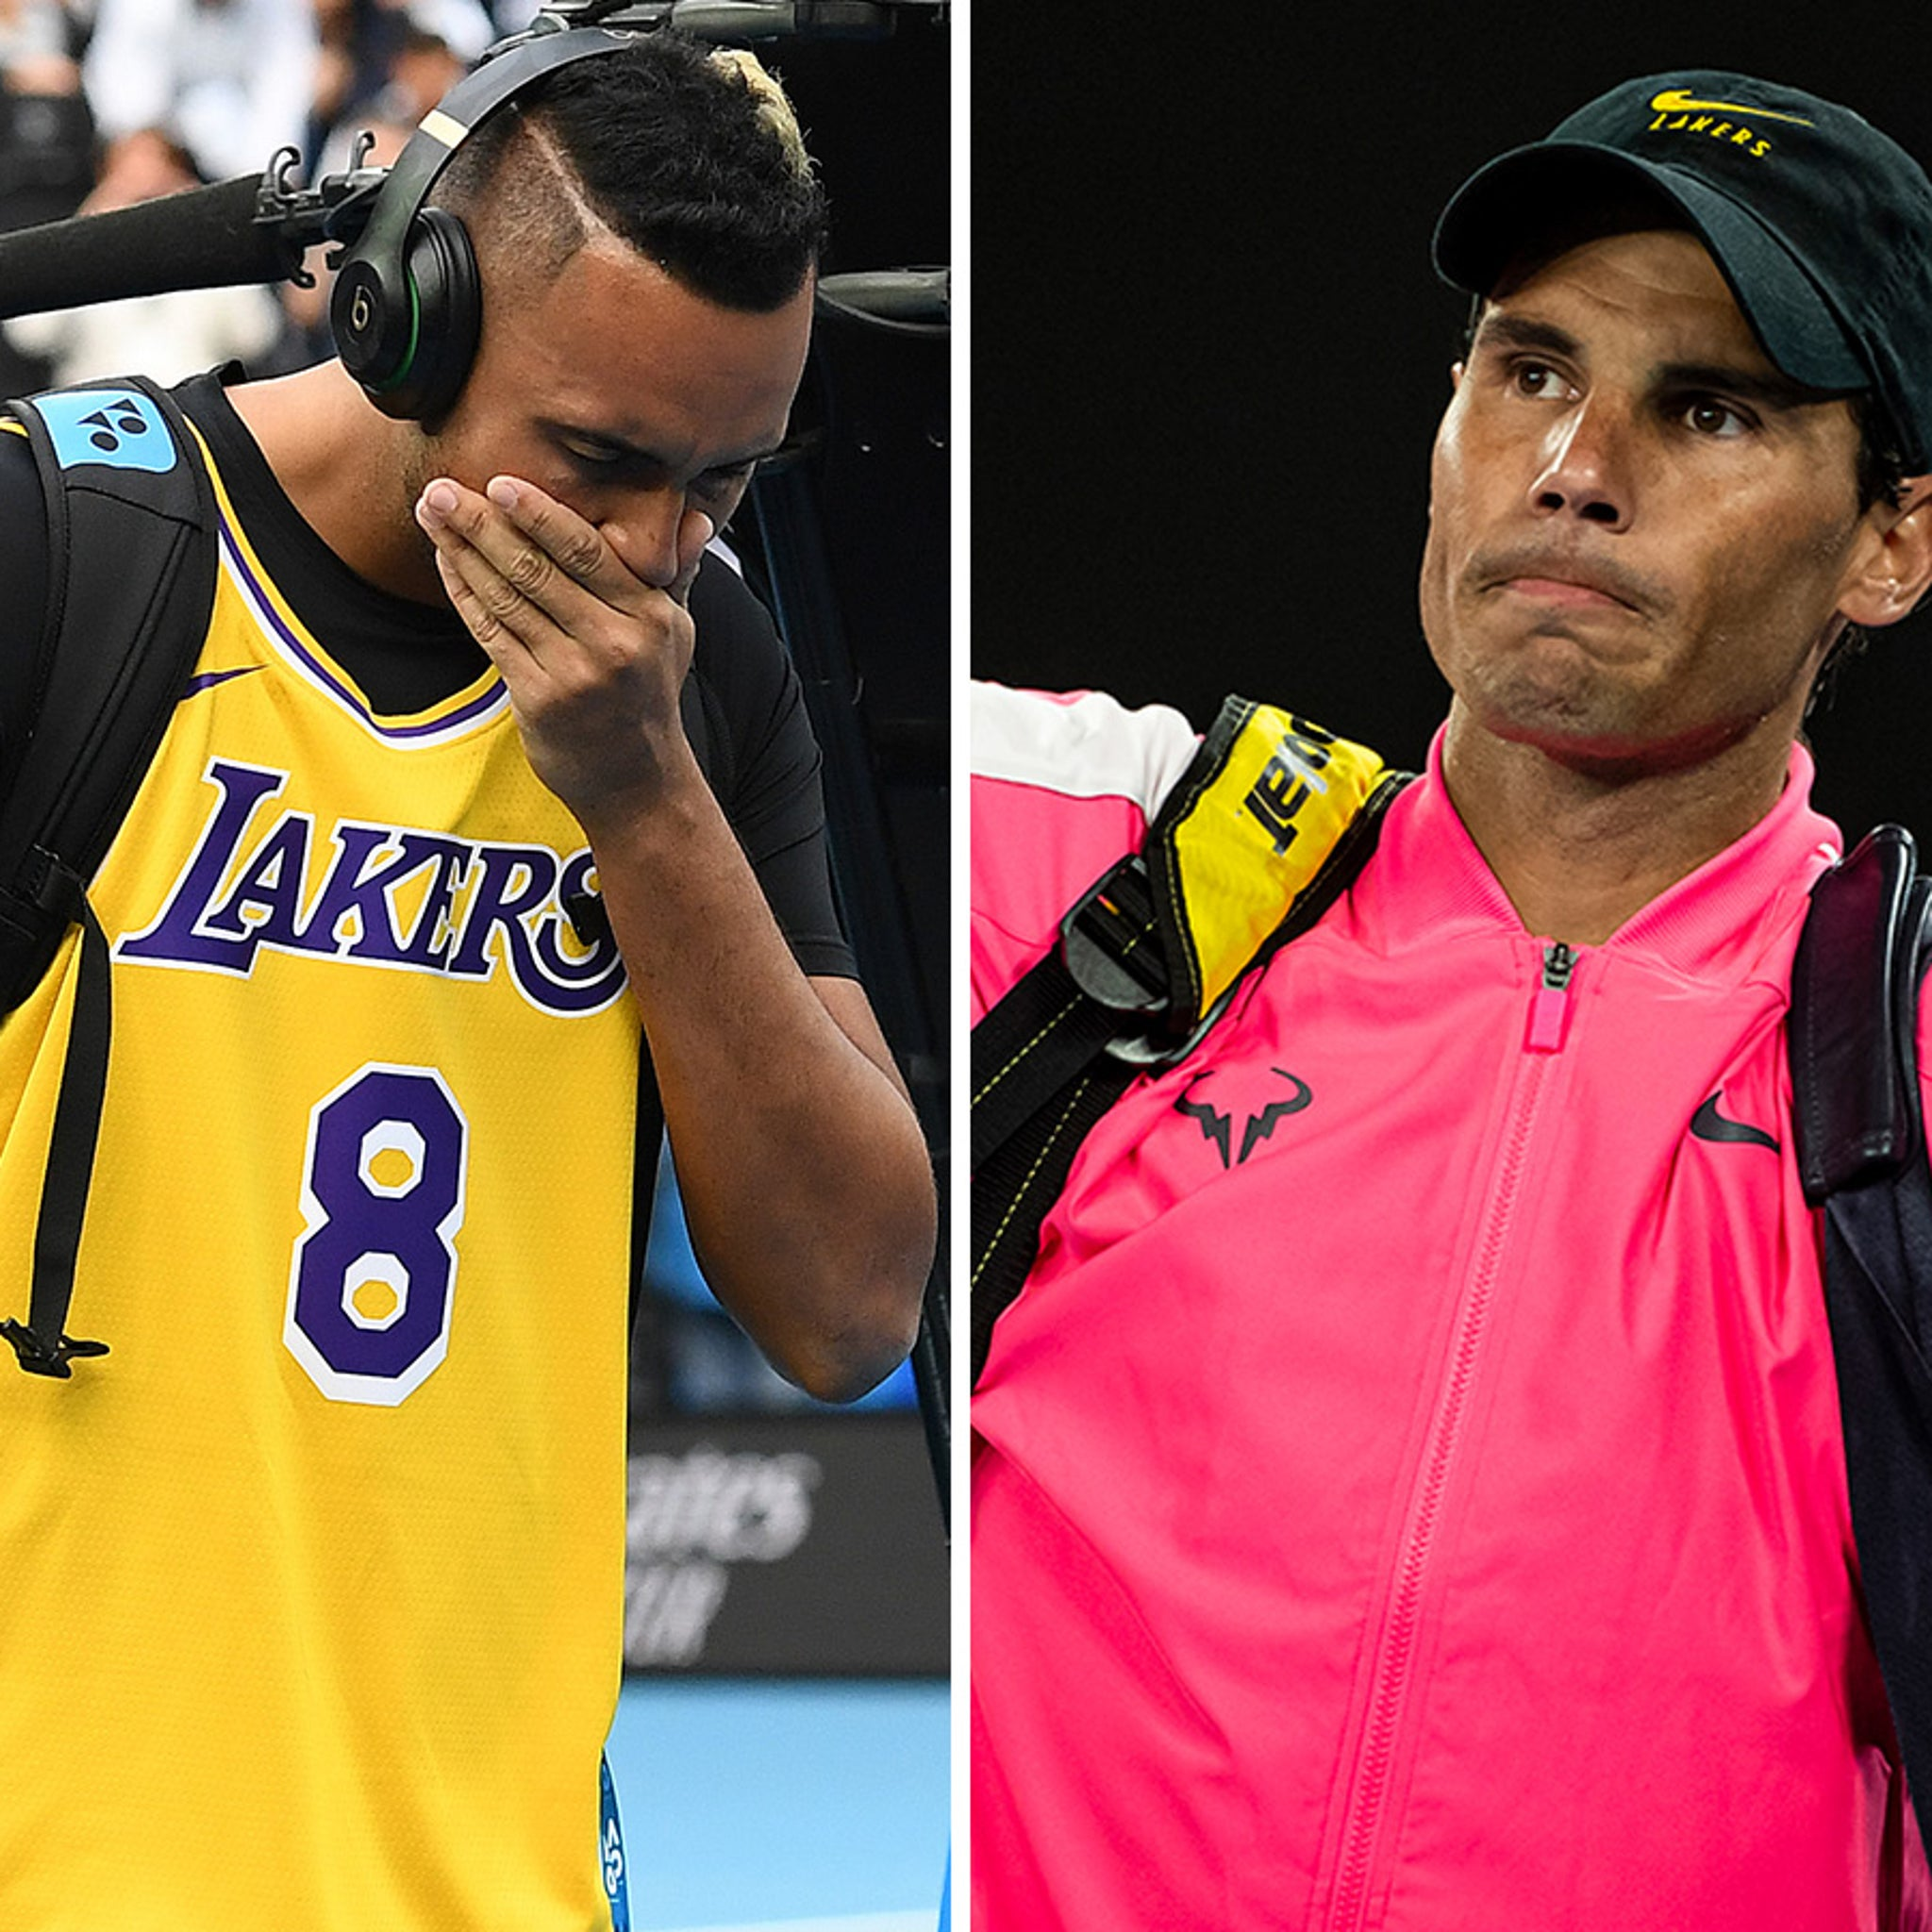 Kobe Bryant Honored By Tennis Stars at Australian Open